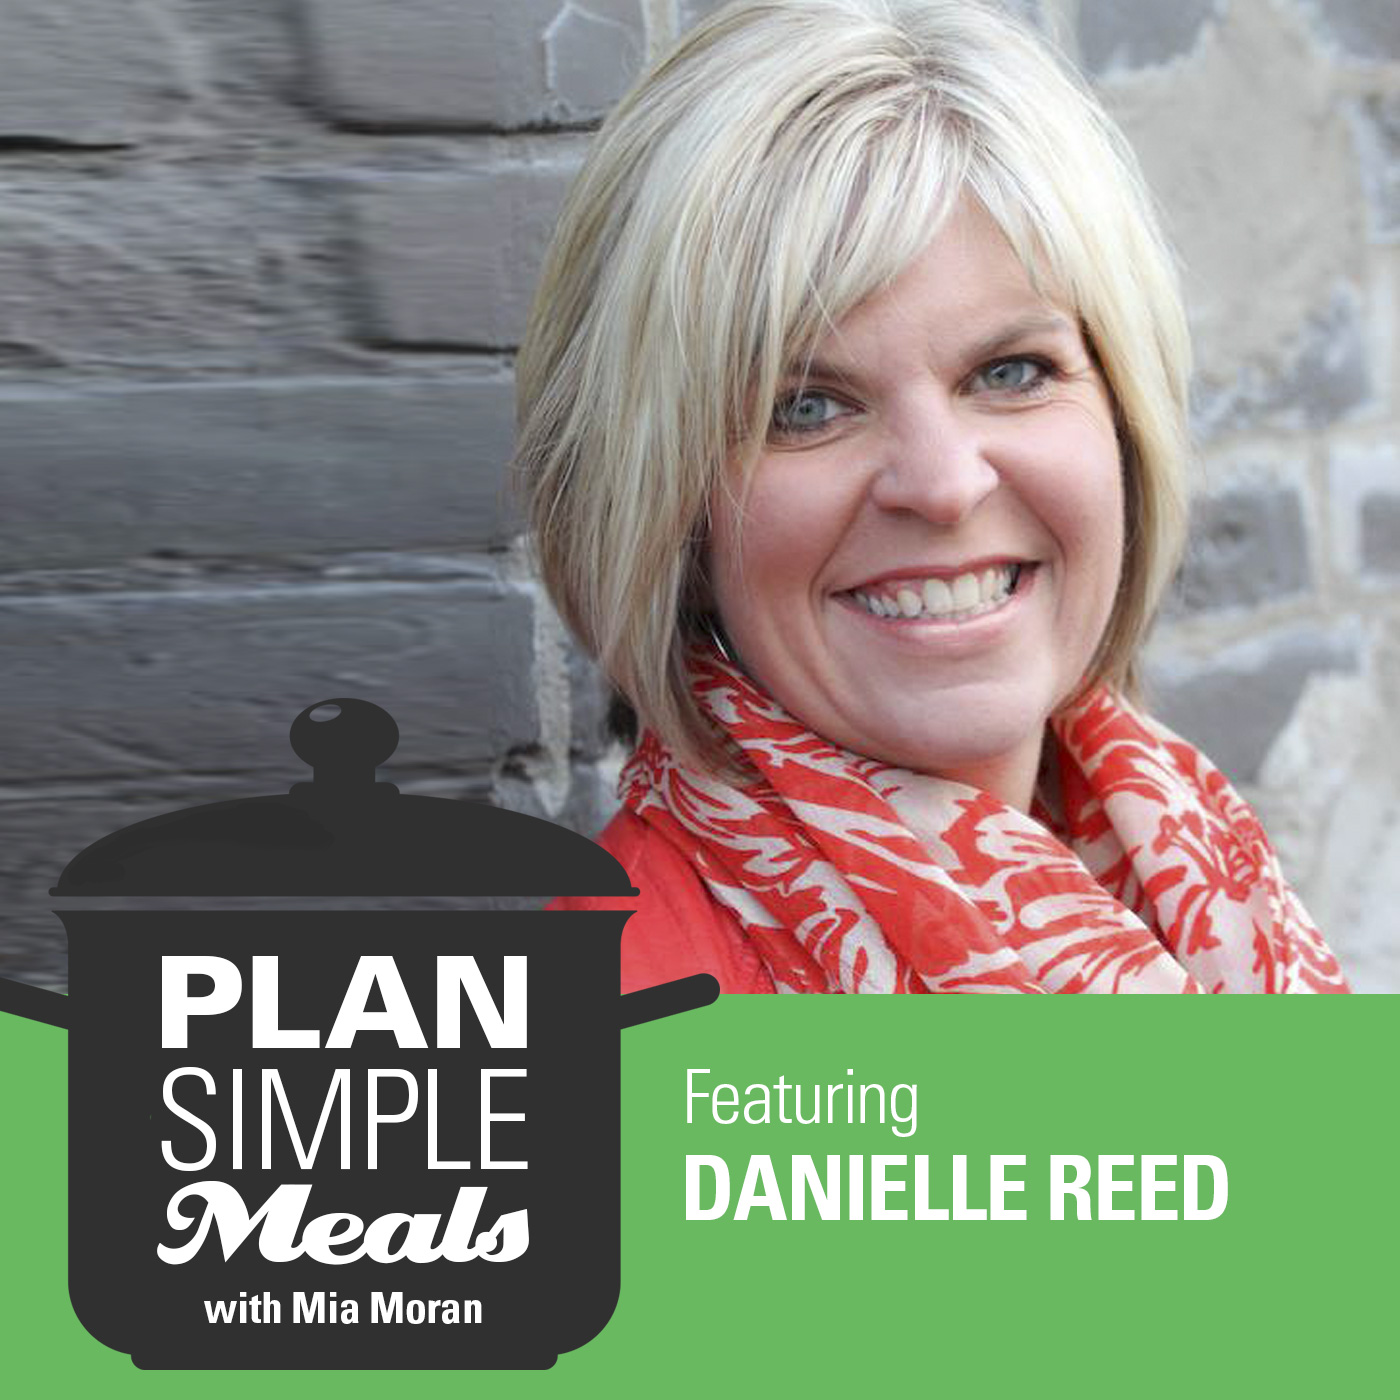 Are You The Adult You Want Your Kids To Be? With Danielle Reed